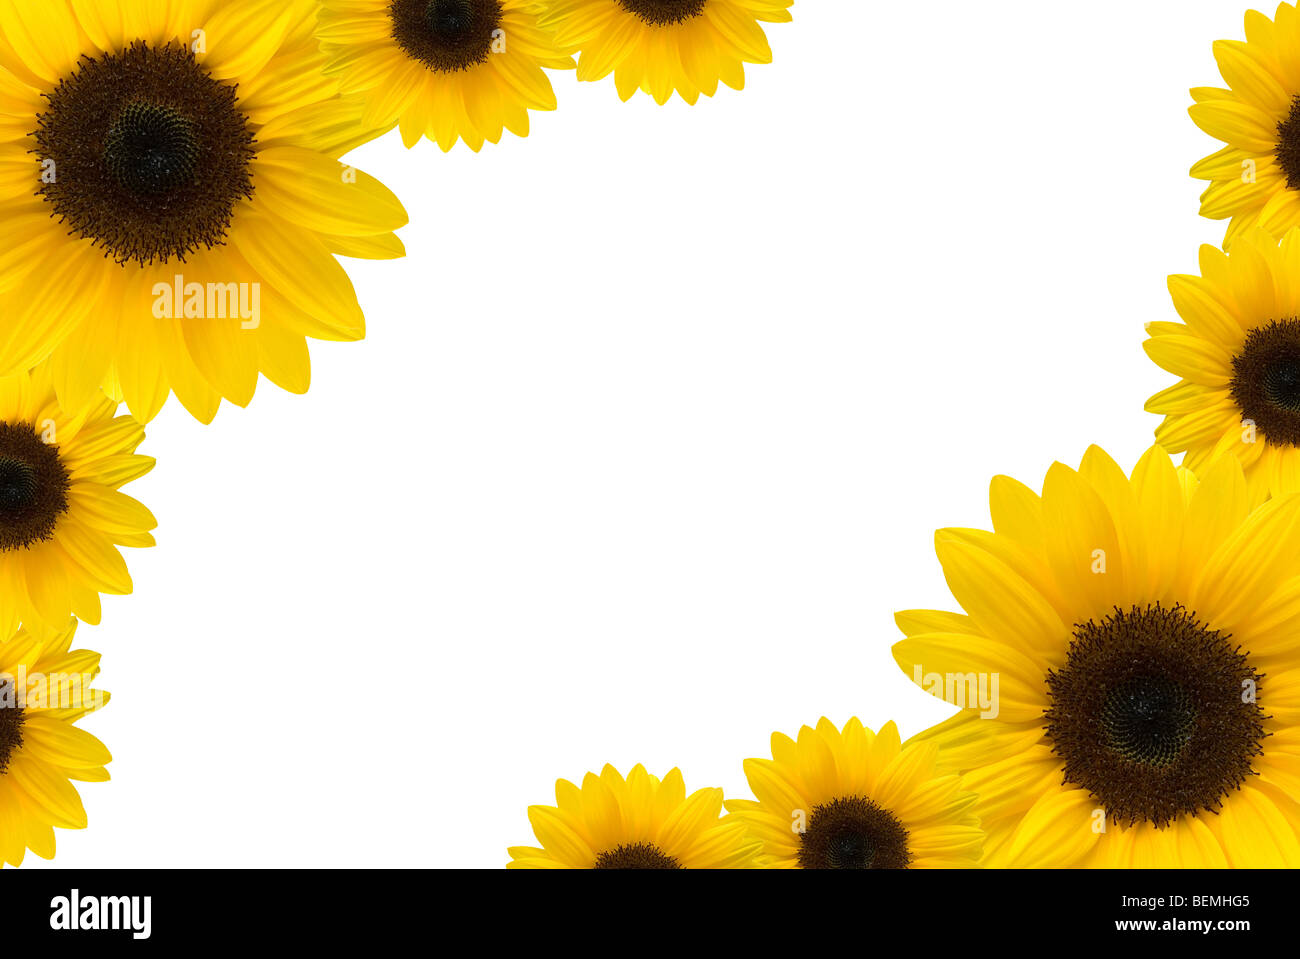 sunflower frame stock photo royalty free image 26268373 alamy sunflower frame jeuxipadfo gallery - Sunflower Picture Frames